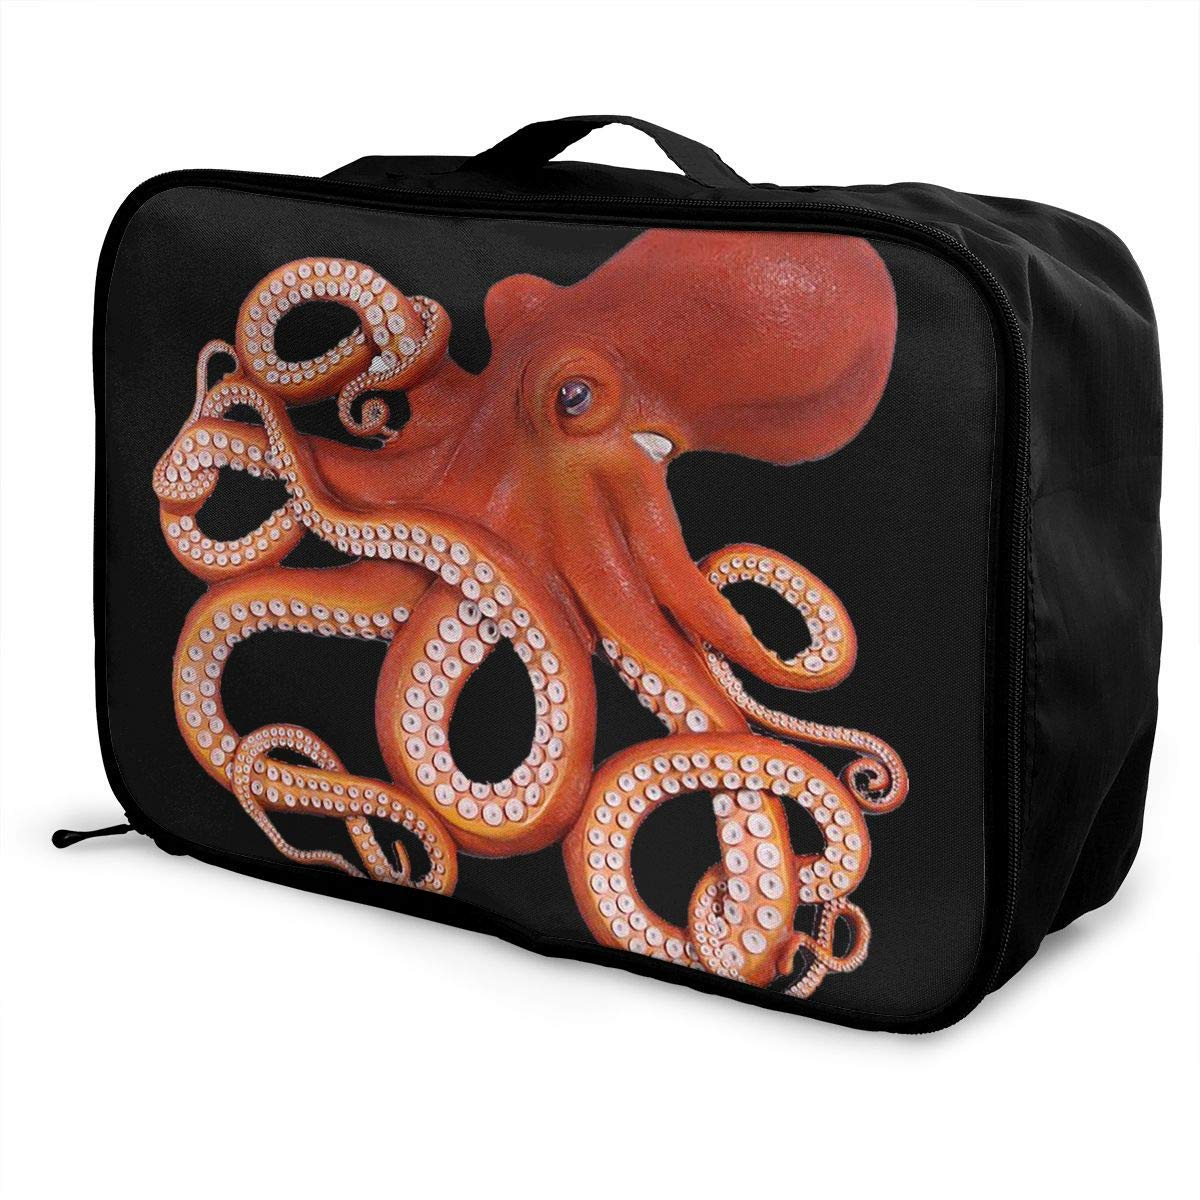 Portable Luggage Duffel Bag Octopus Travel Bags Carry-on In Trolley Handle